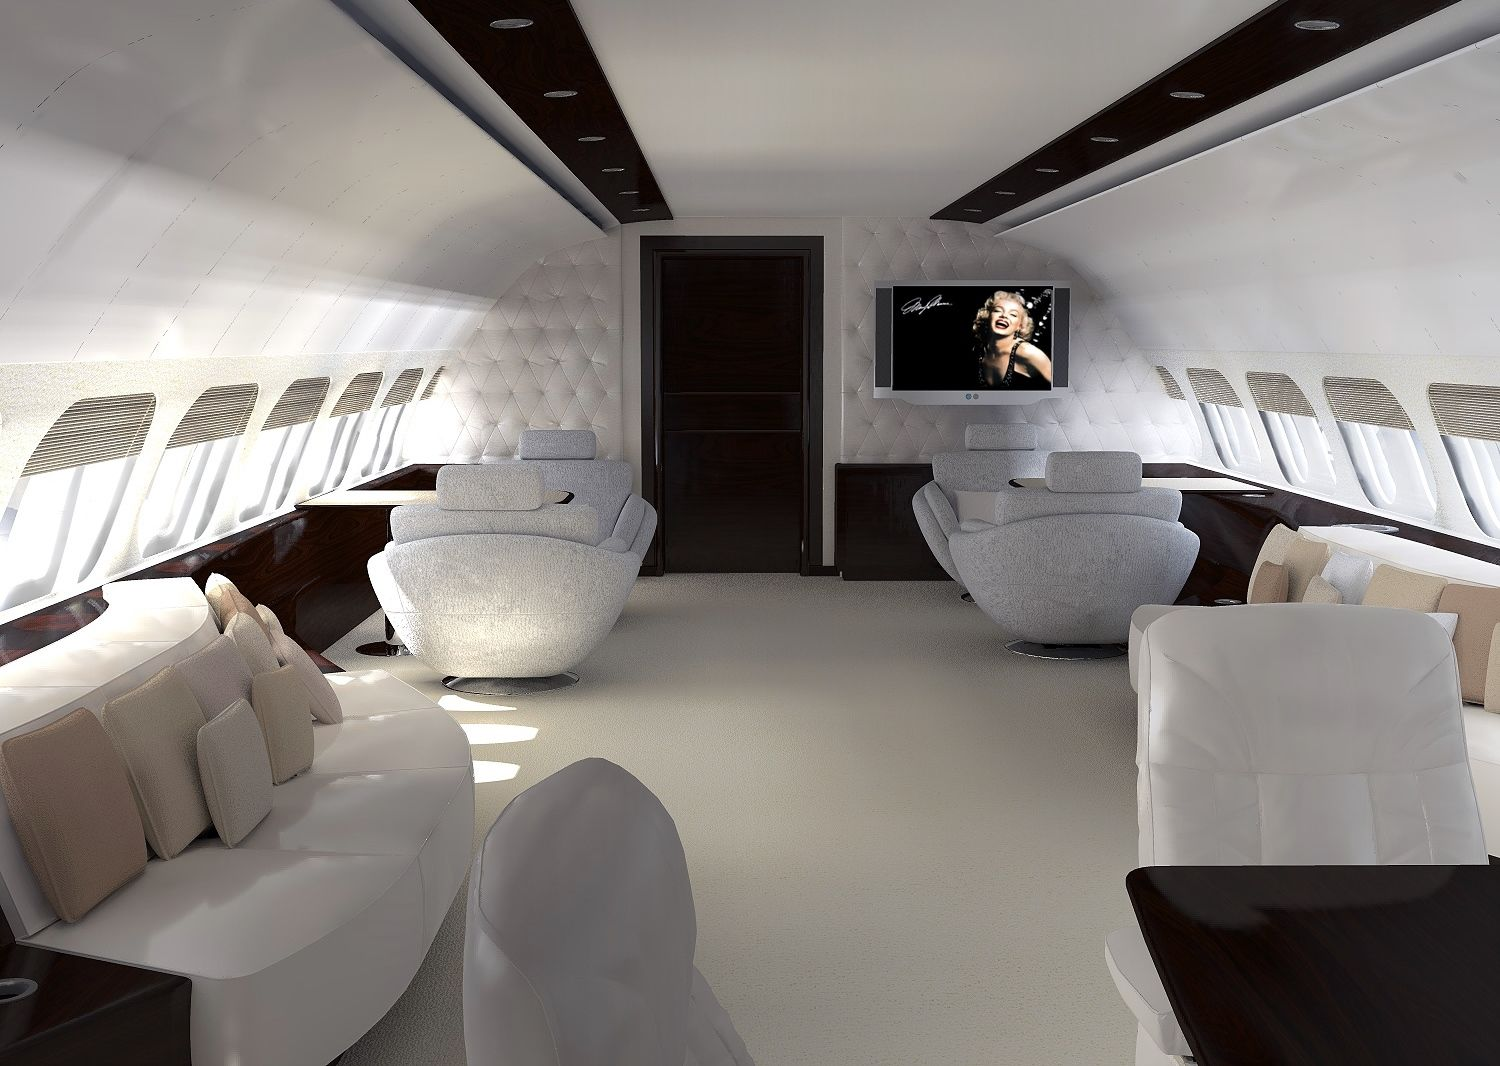 Great We Support Buyers Of Private And Business Custom Jets Jets By Providing  Consultancy And Project Management Services For Design And Completion.